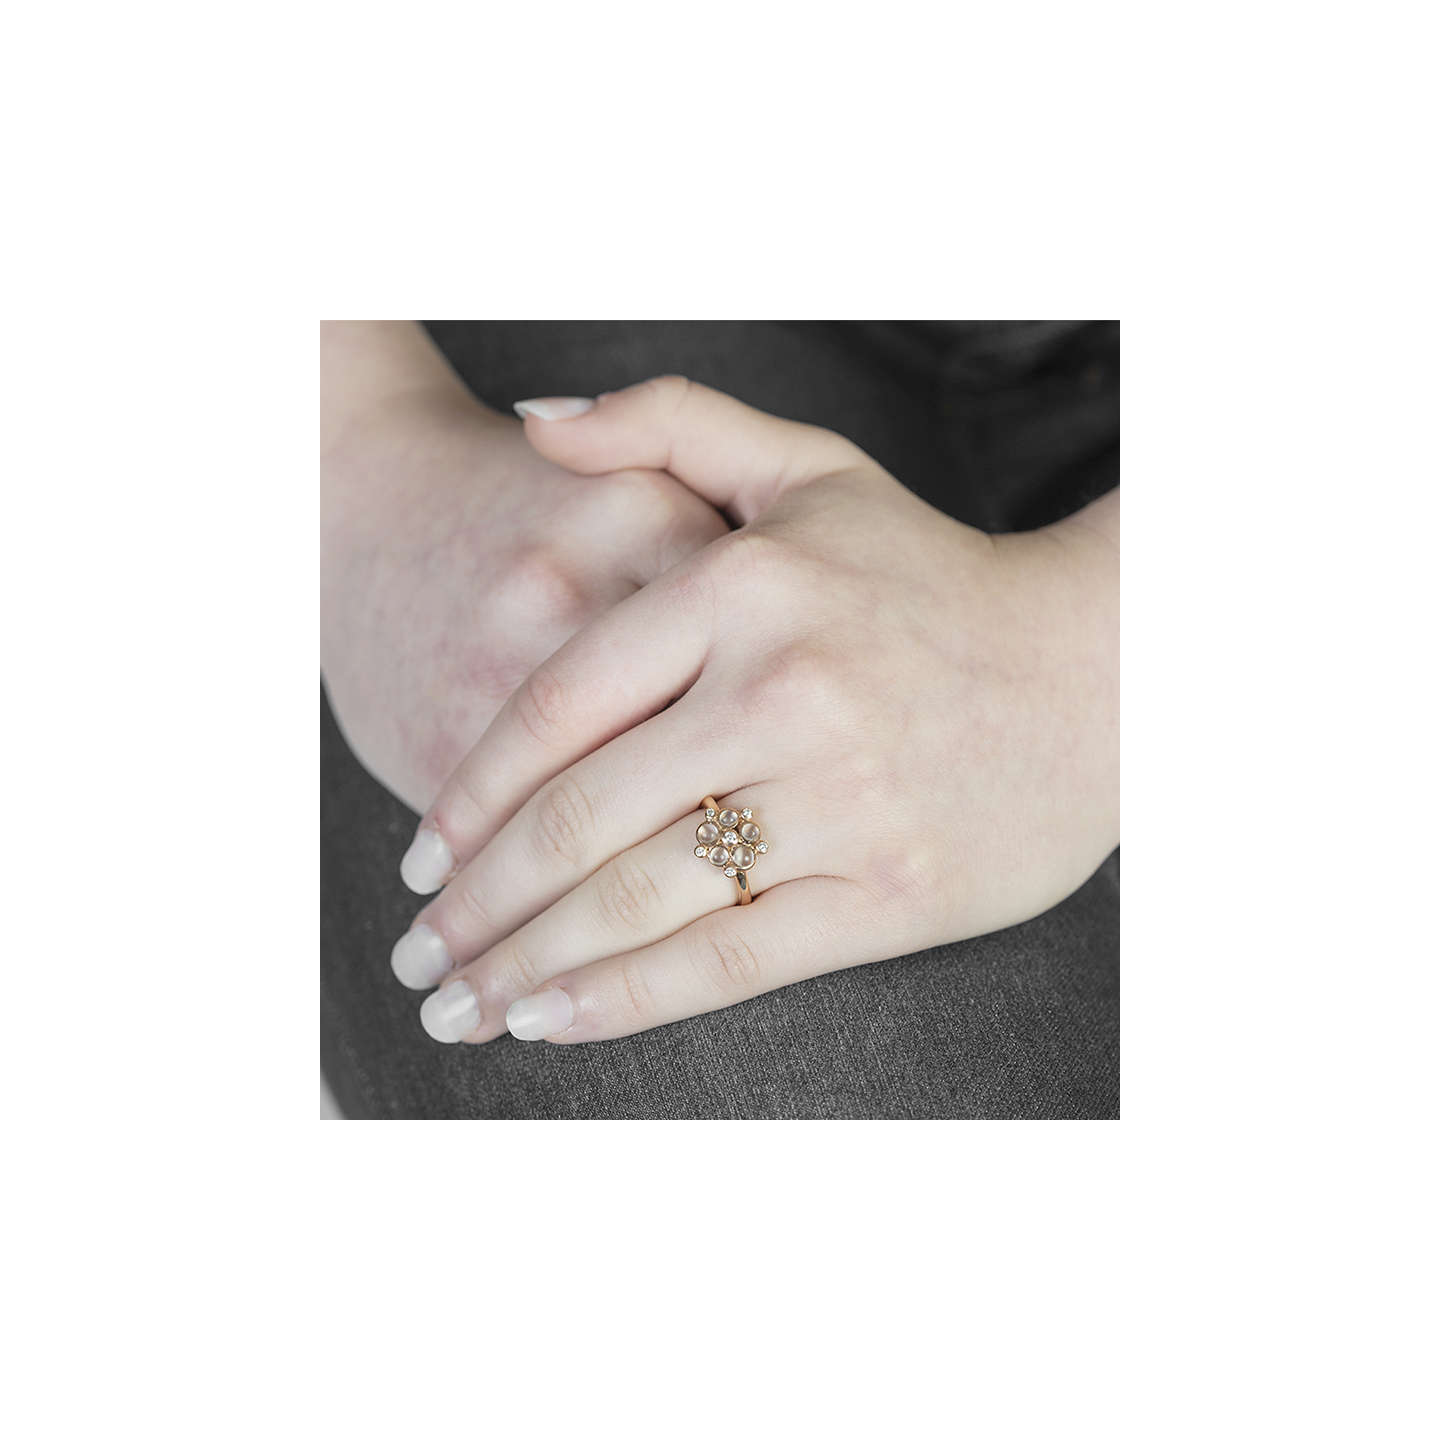 BuyLondon Road 9ct Gold Diamond Bubble Cluster Ring, Rose Gold/Moonstone Online at johnlewis.com